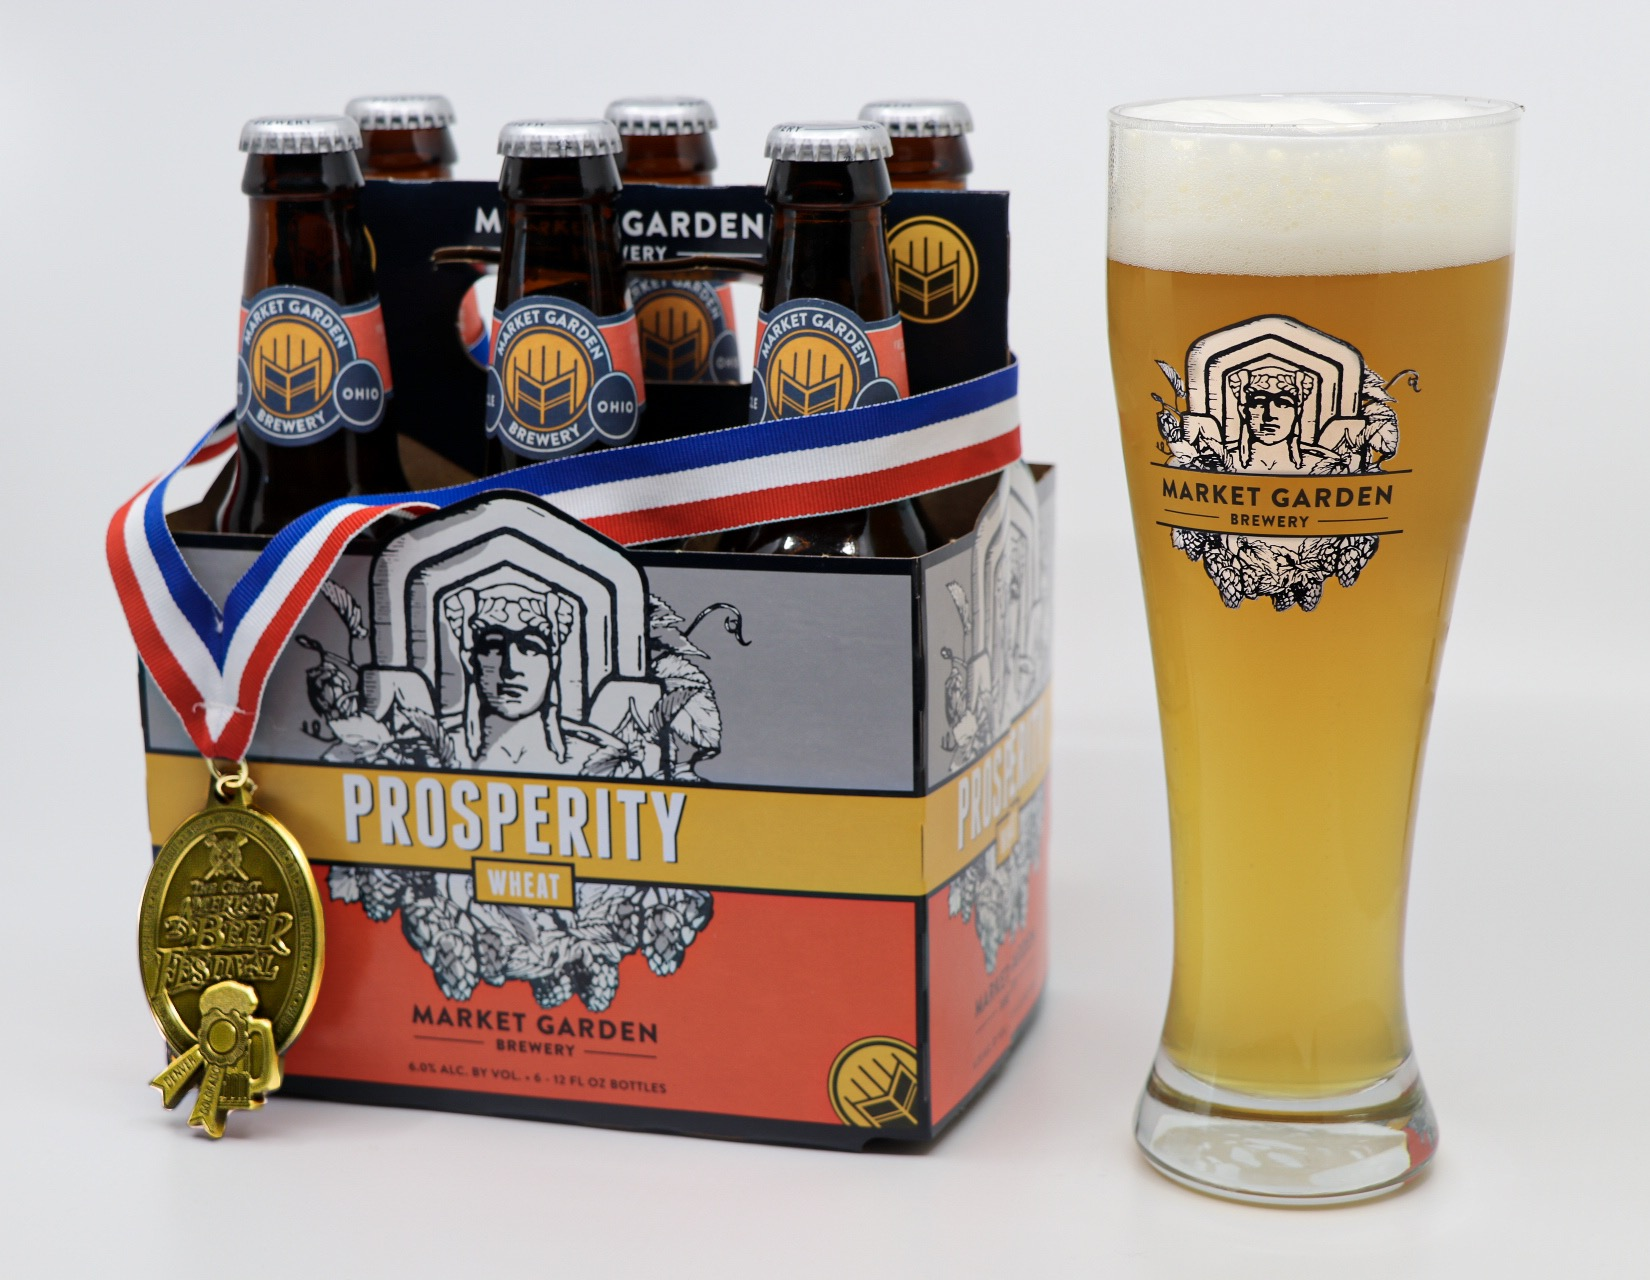 Market Garden Brewery Prosperity Wheat